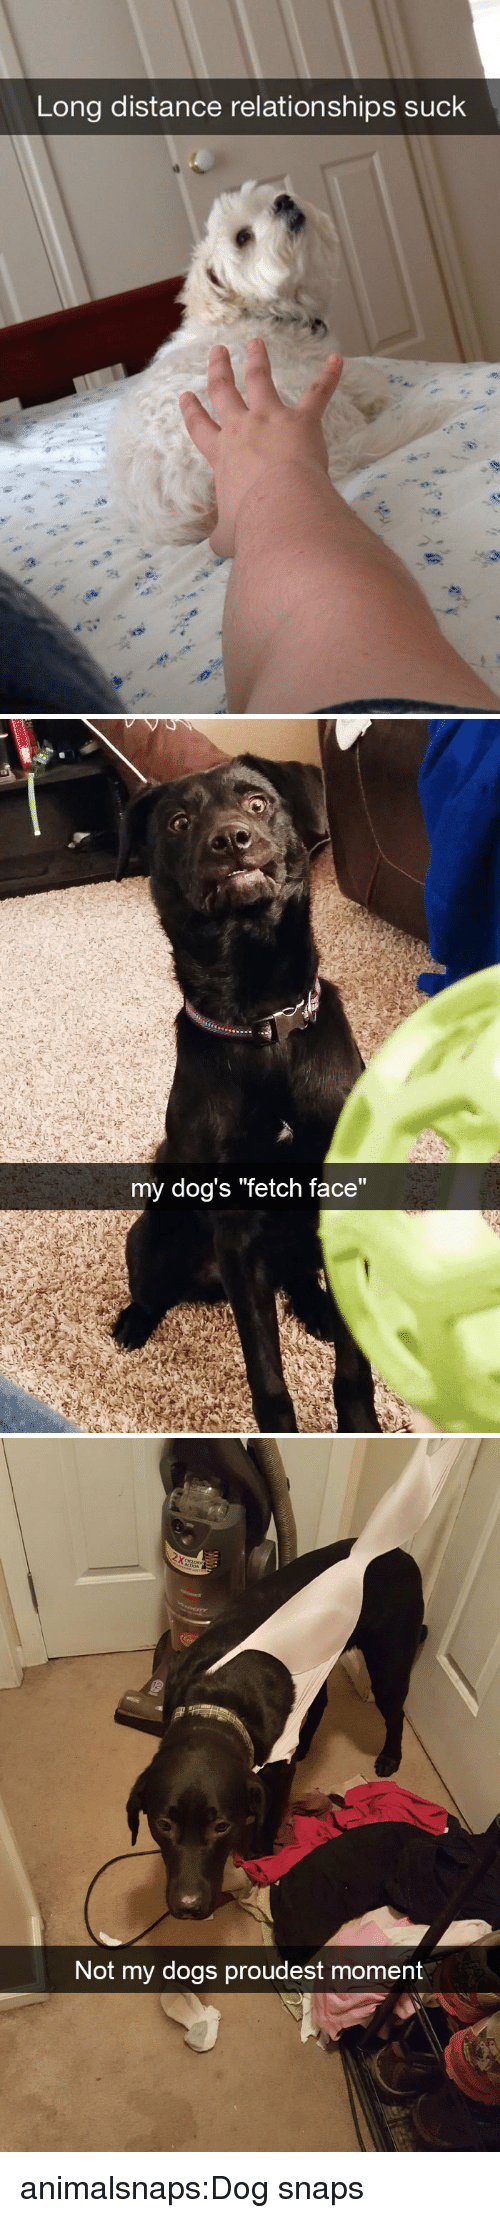 "Dogs, Relationships, and Target: Long distance relationships suck   my dog's ""fetch face""   Not my dogs proudest mom  ent animalsnaps:Dog snaps"